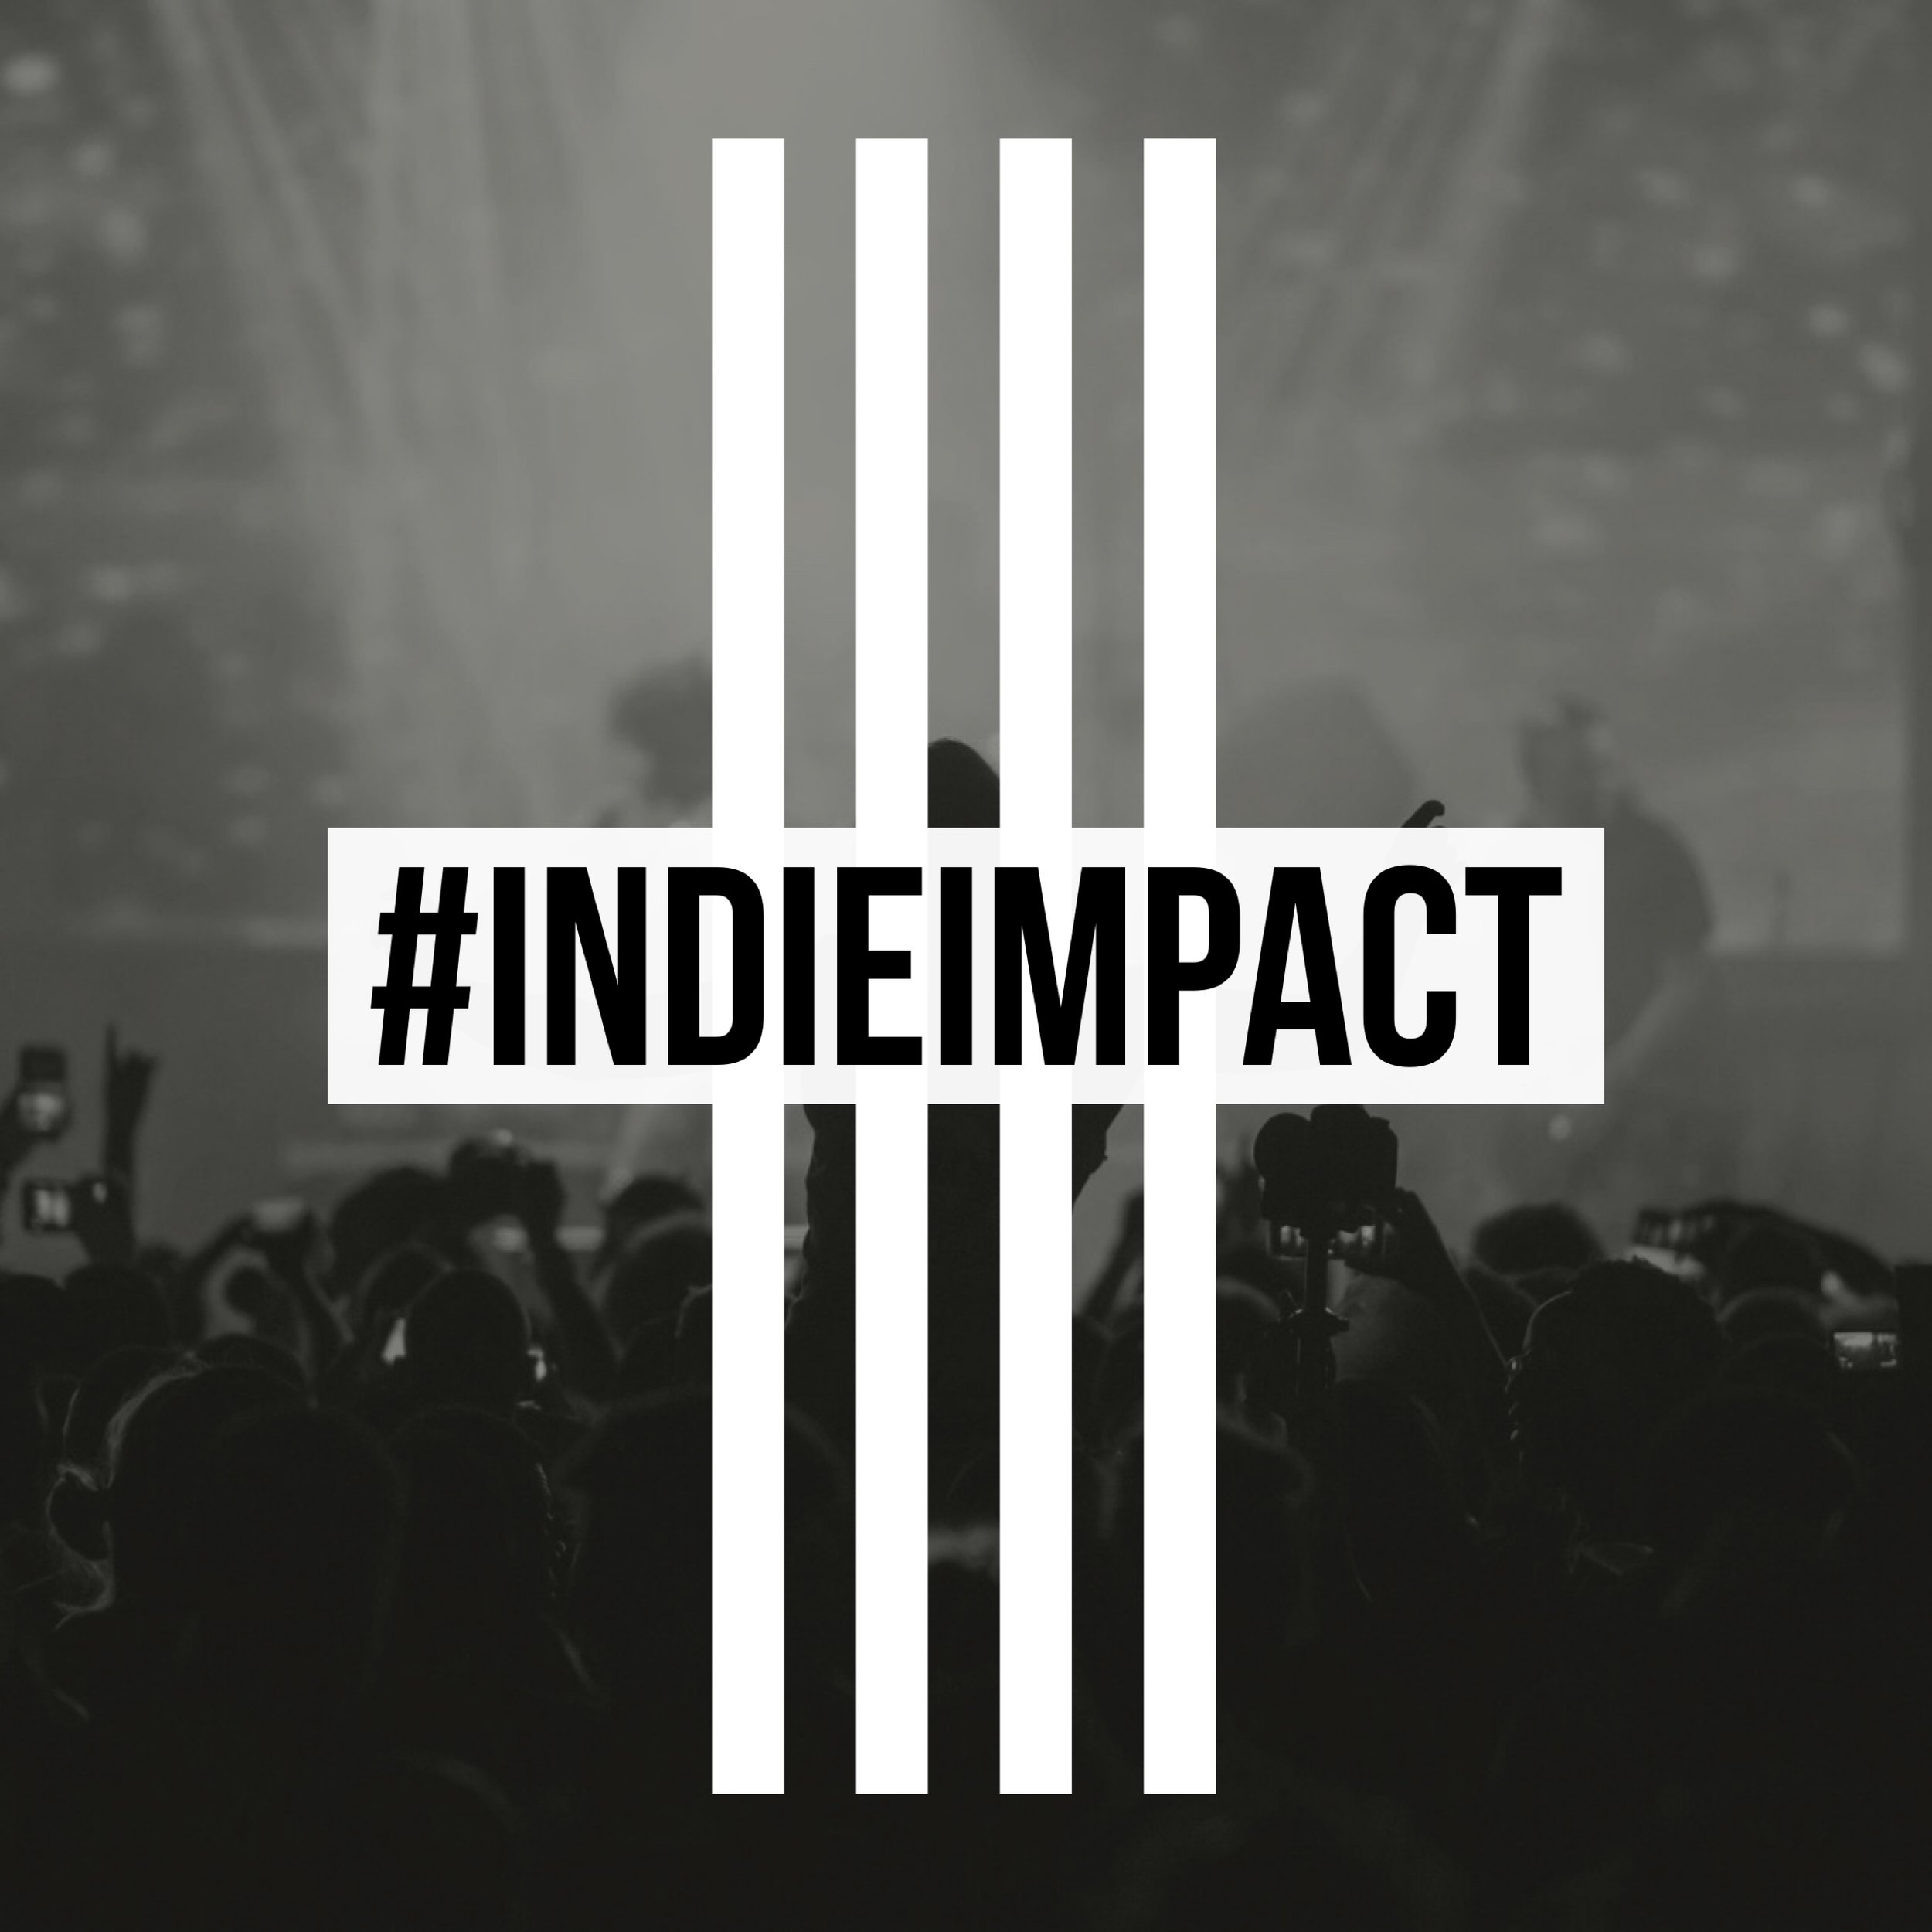 IndieImpact (Spotify Playlist Cover).JPG